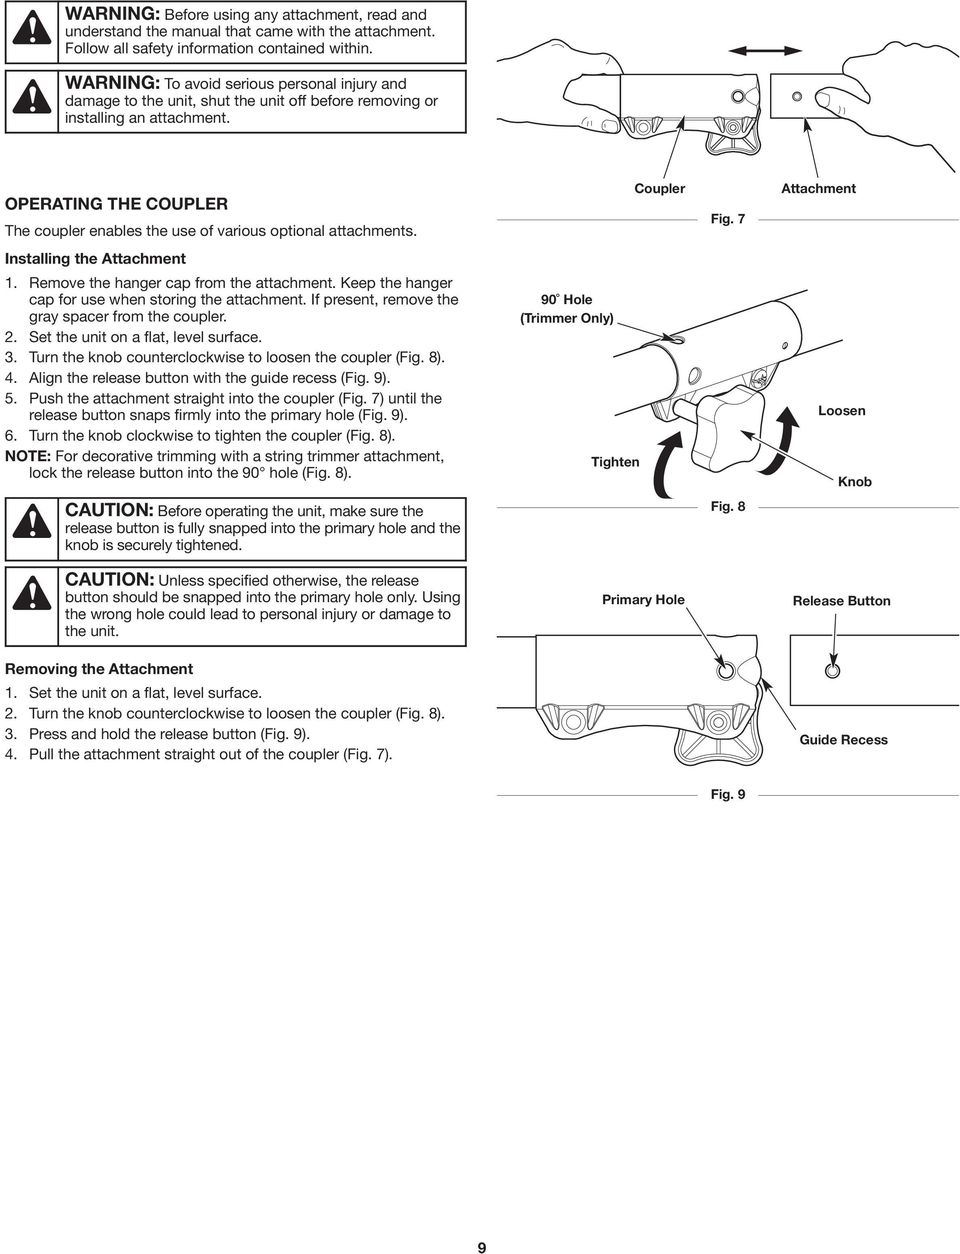 OPERATING THE COUPLER The coupler enables the use of various optional  attachments. Installing the Attachment